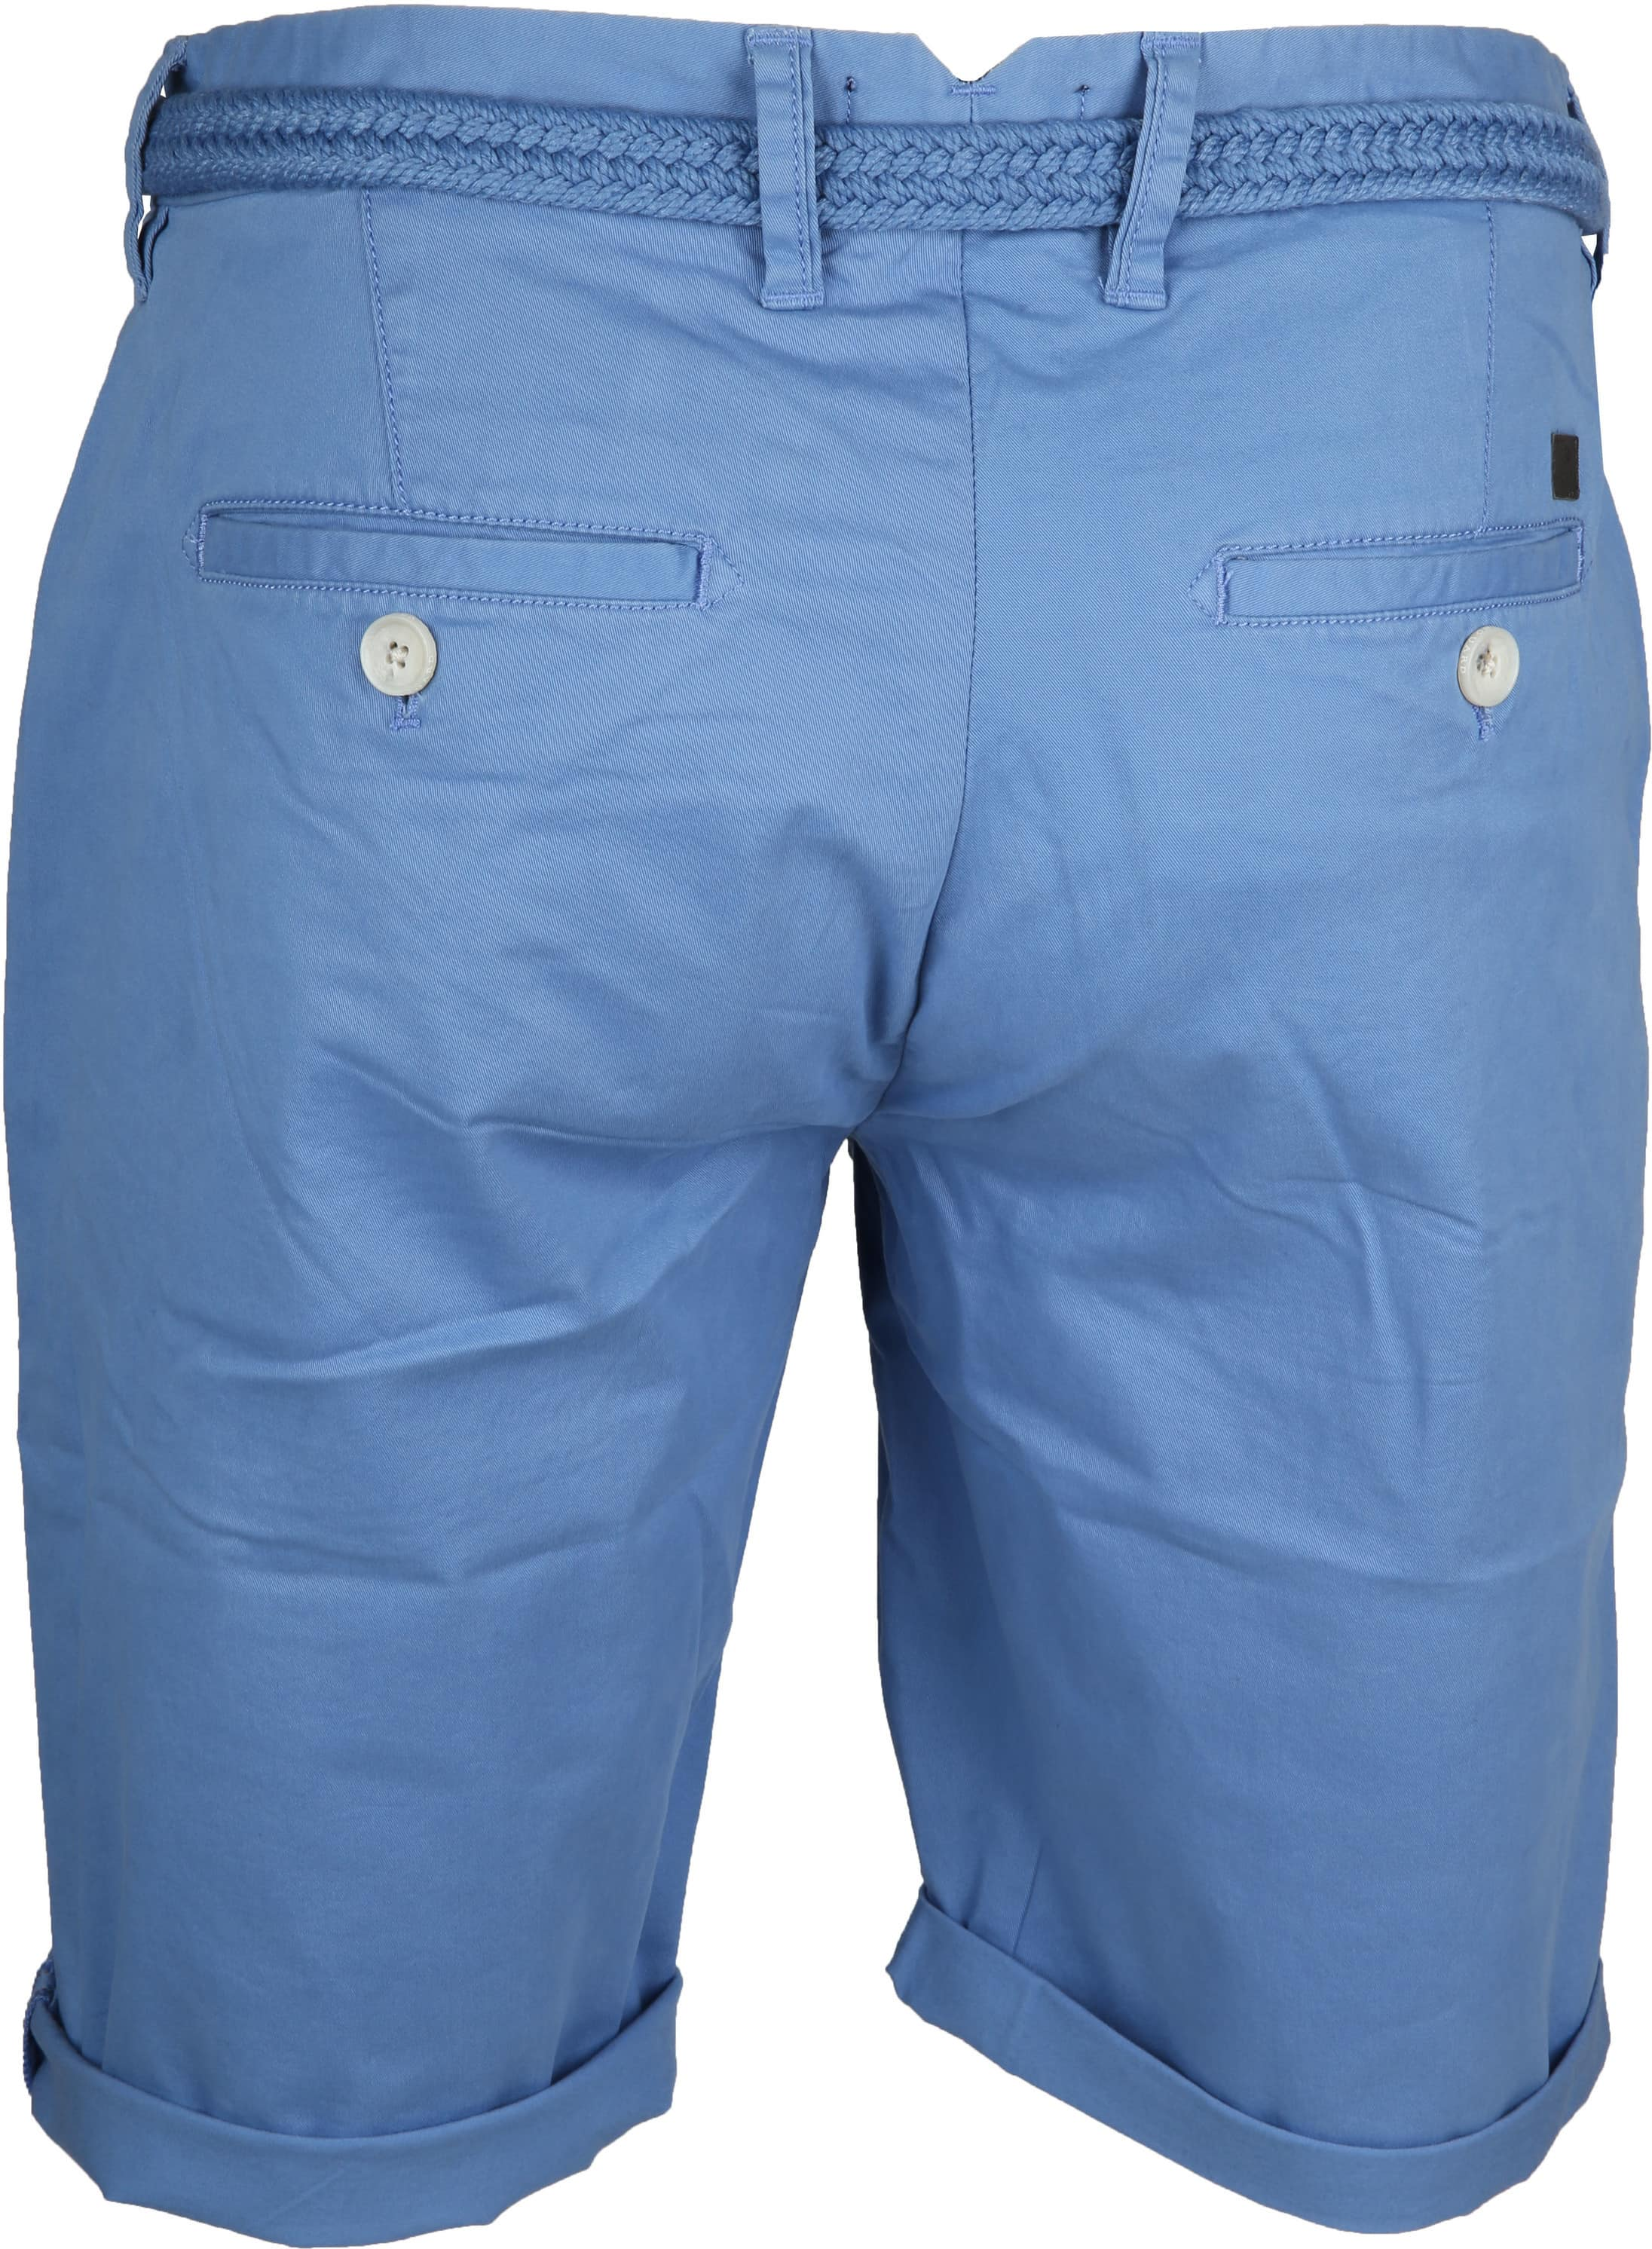 Vanguard V65 Short Blue foto 2